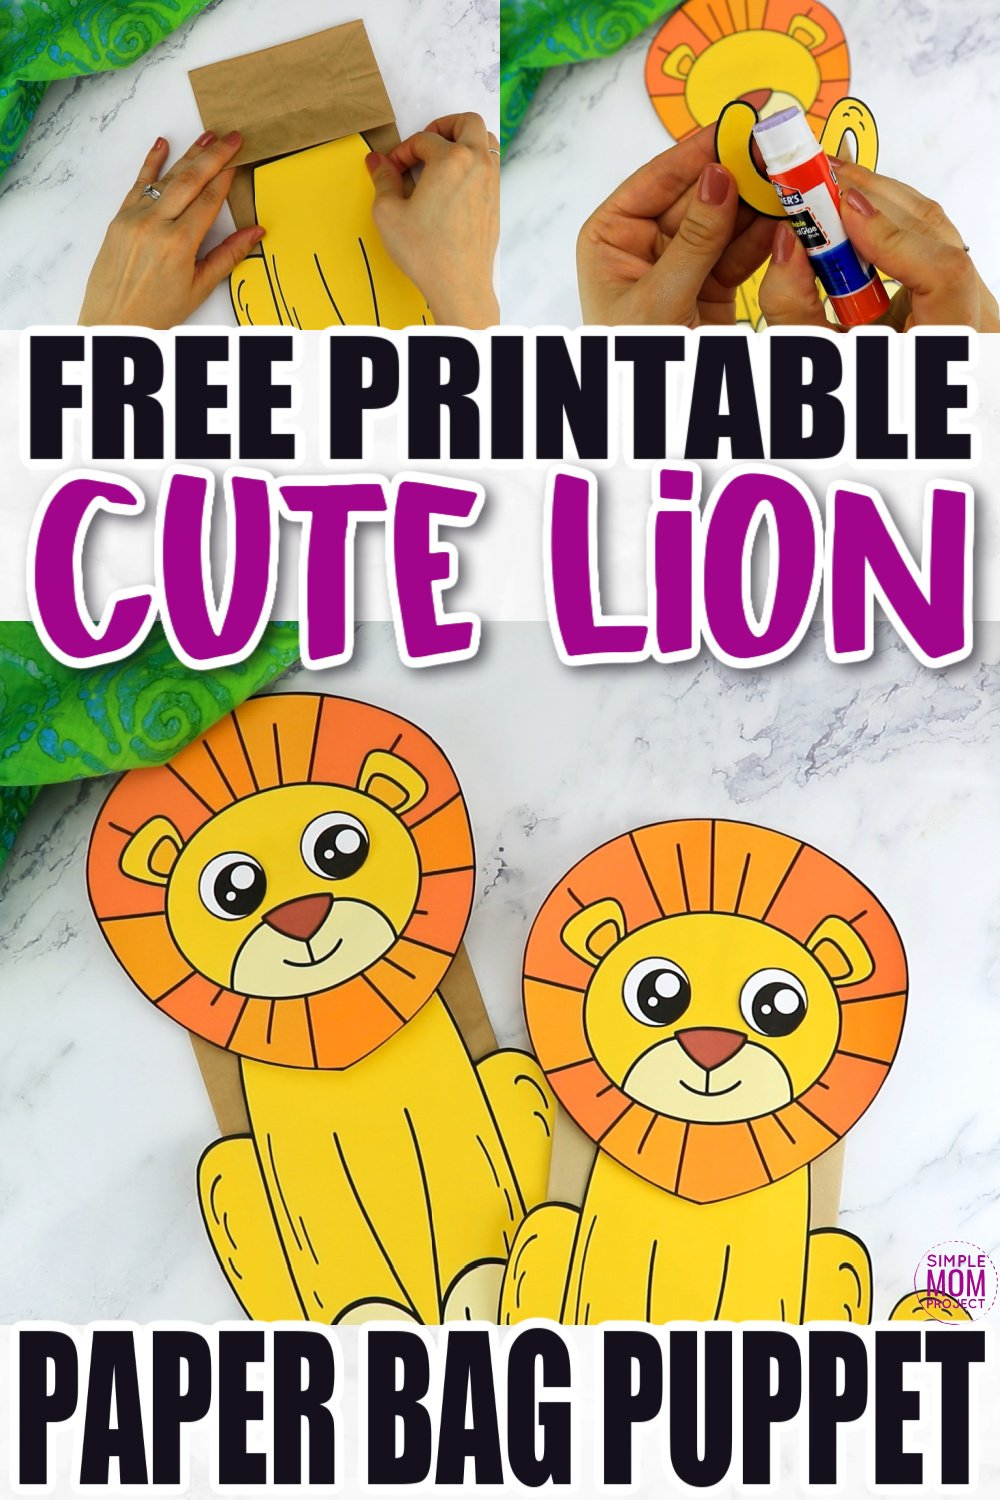 Are you teaching the letter L to your preschooler or toddler? Be sure to use this free printable paper bag lion puppet template. It is easy to cut out and craft making it with simple materials like a paper bag! The lion template comes in color and in black and white. Print yours now!